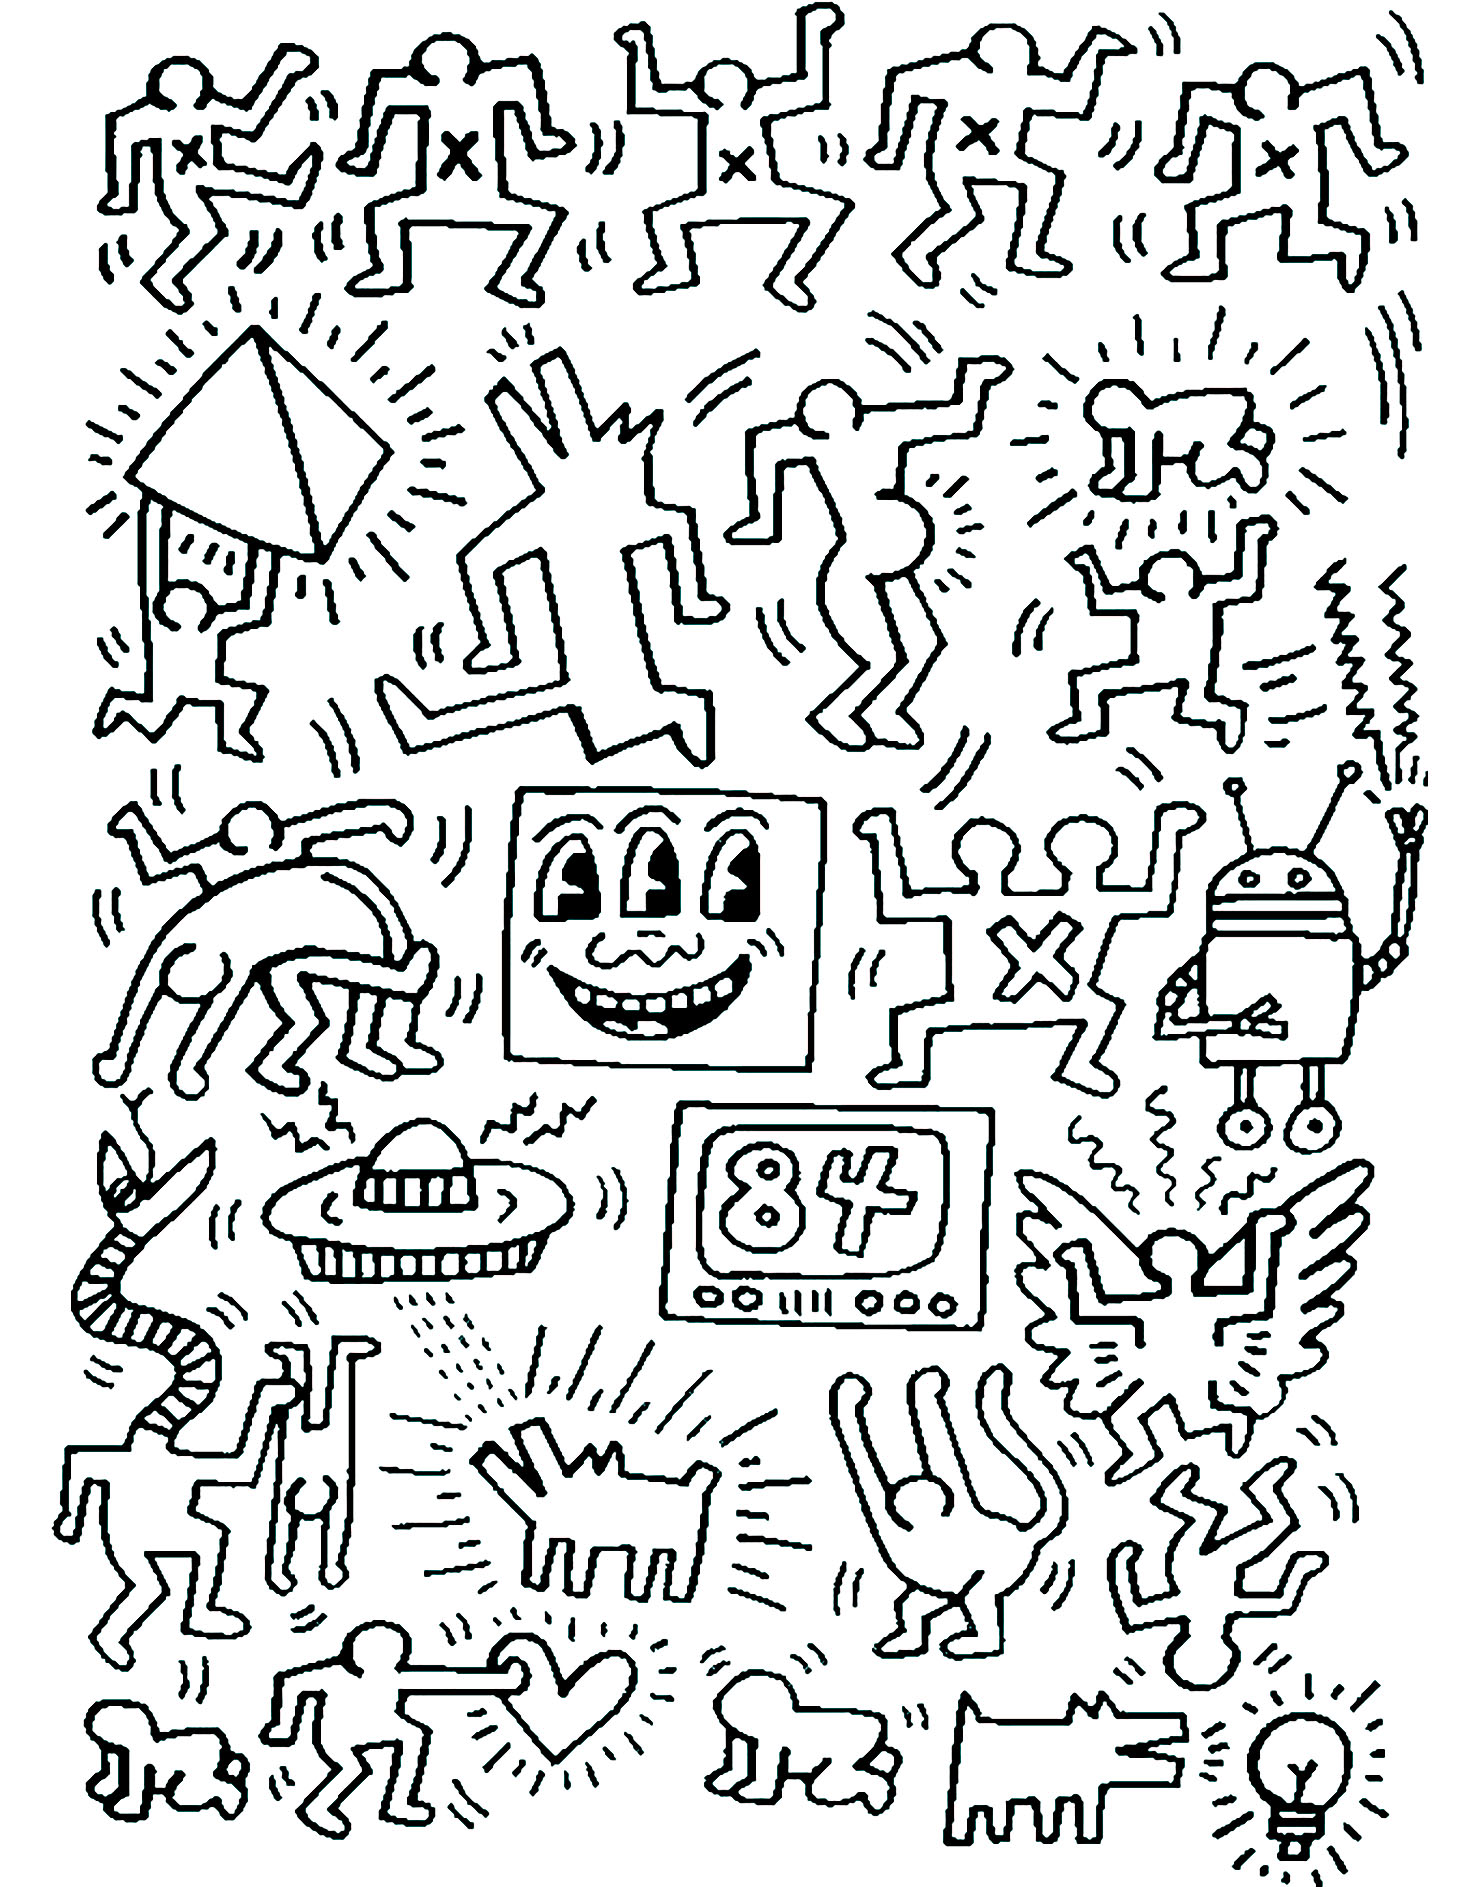 Keith haring 7 - Pop Art Adult Coloring Pages